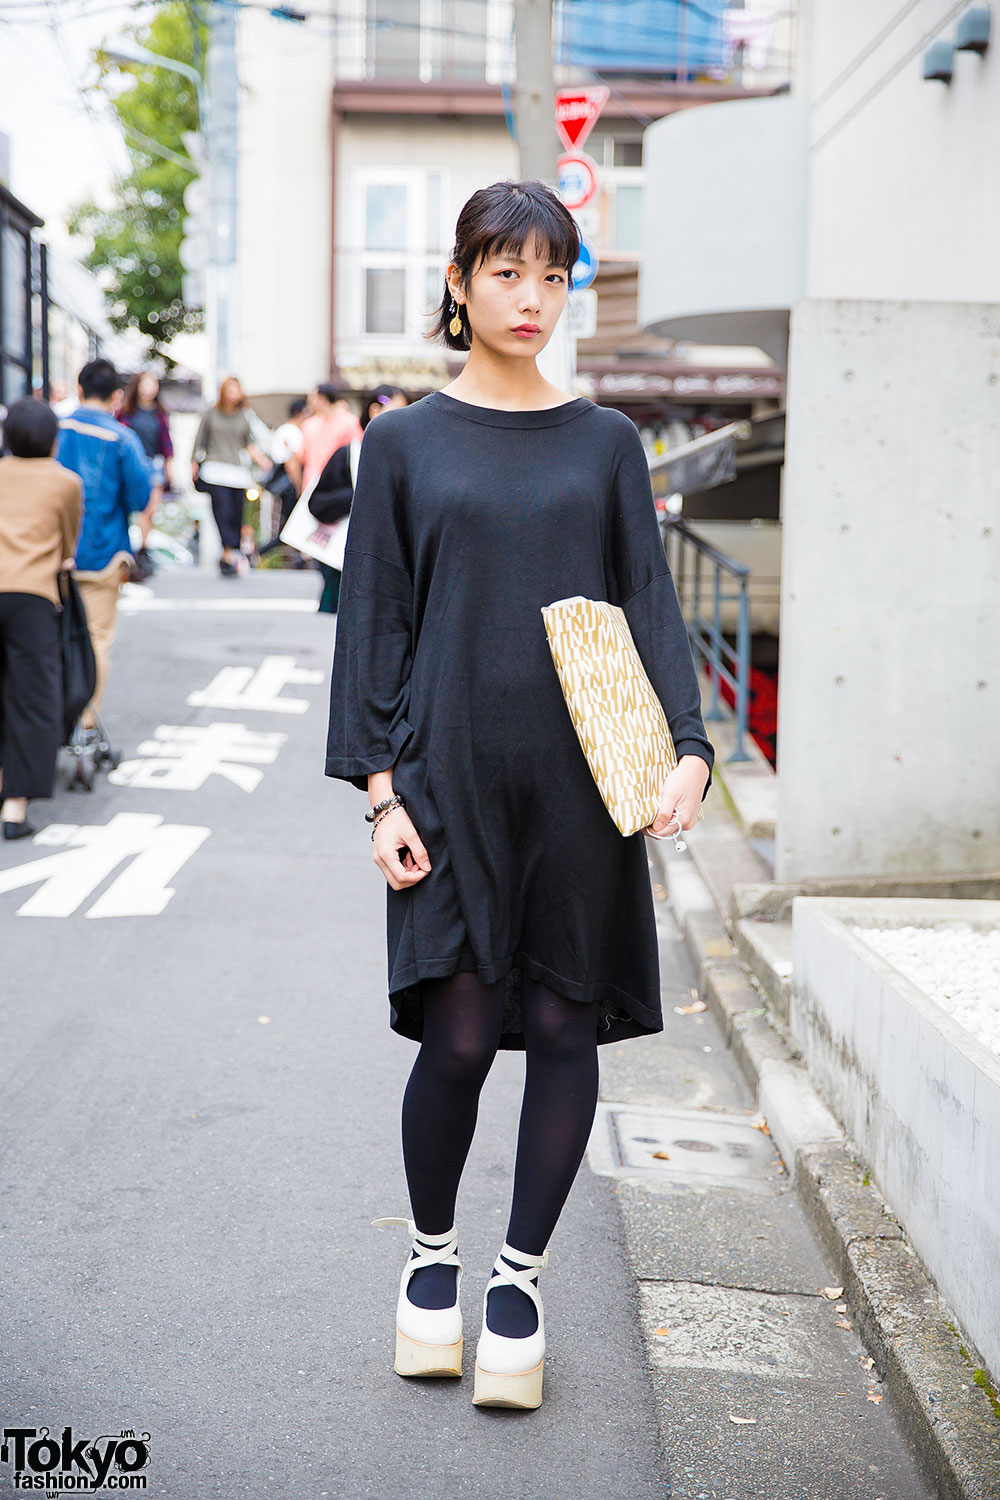 Harajuku Girl In Minimalist Style W Black Dress Mint